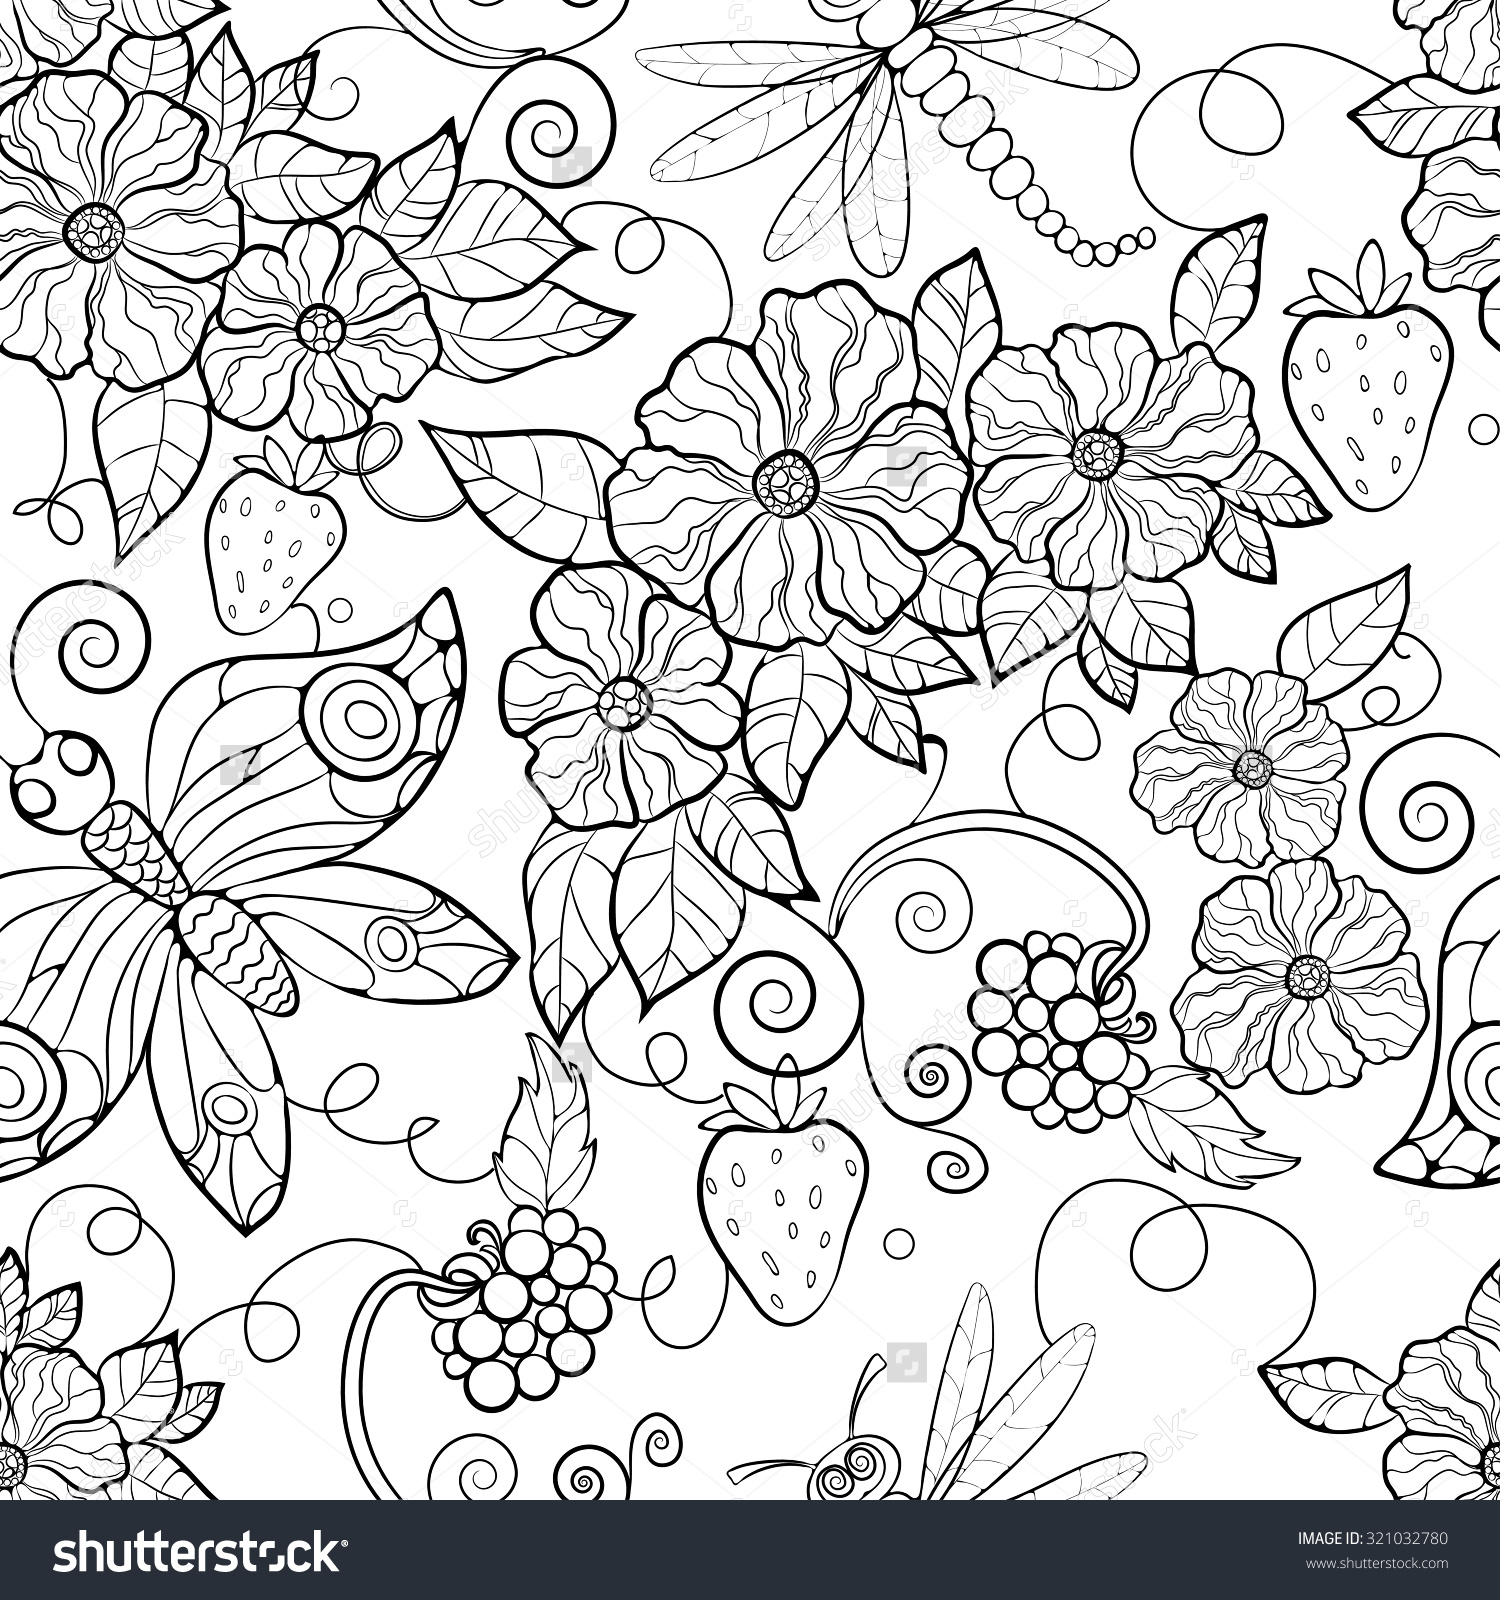 Abstract Patterns Coloring Pages At Getdrawings Com Free For